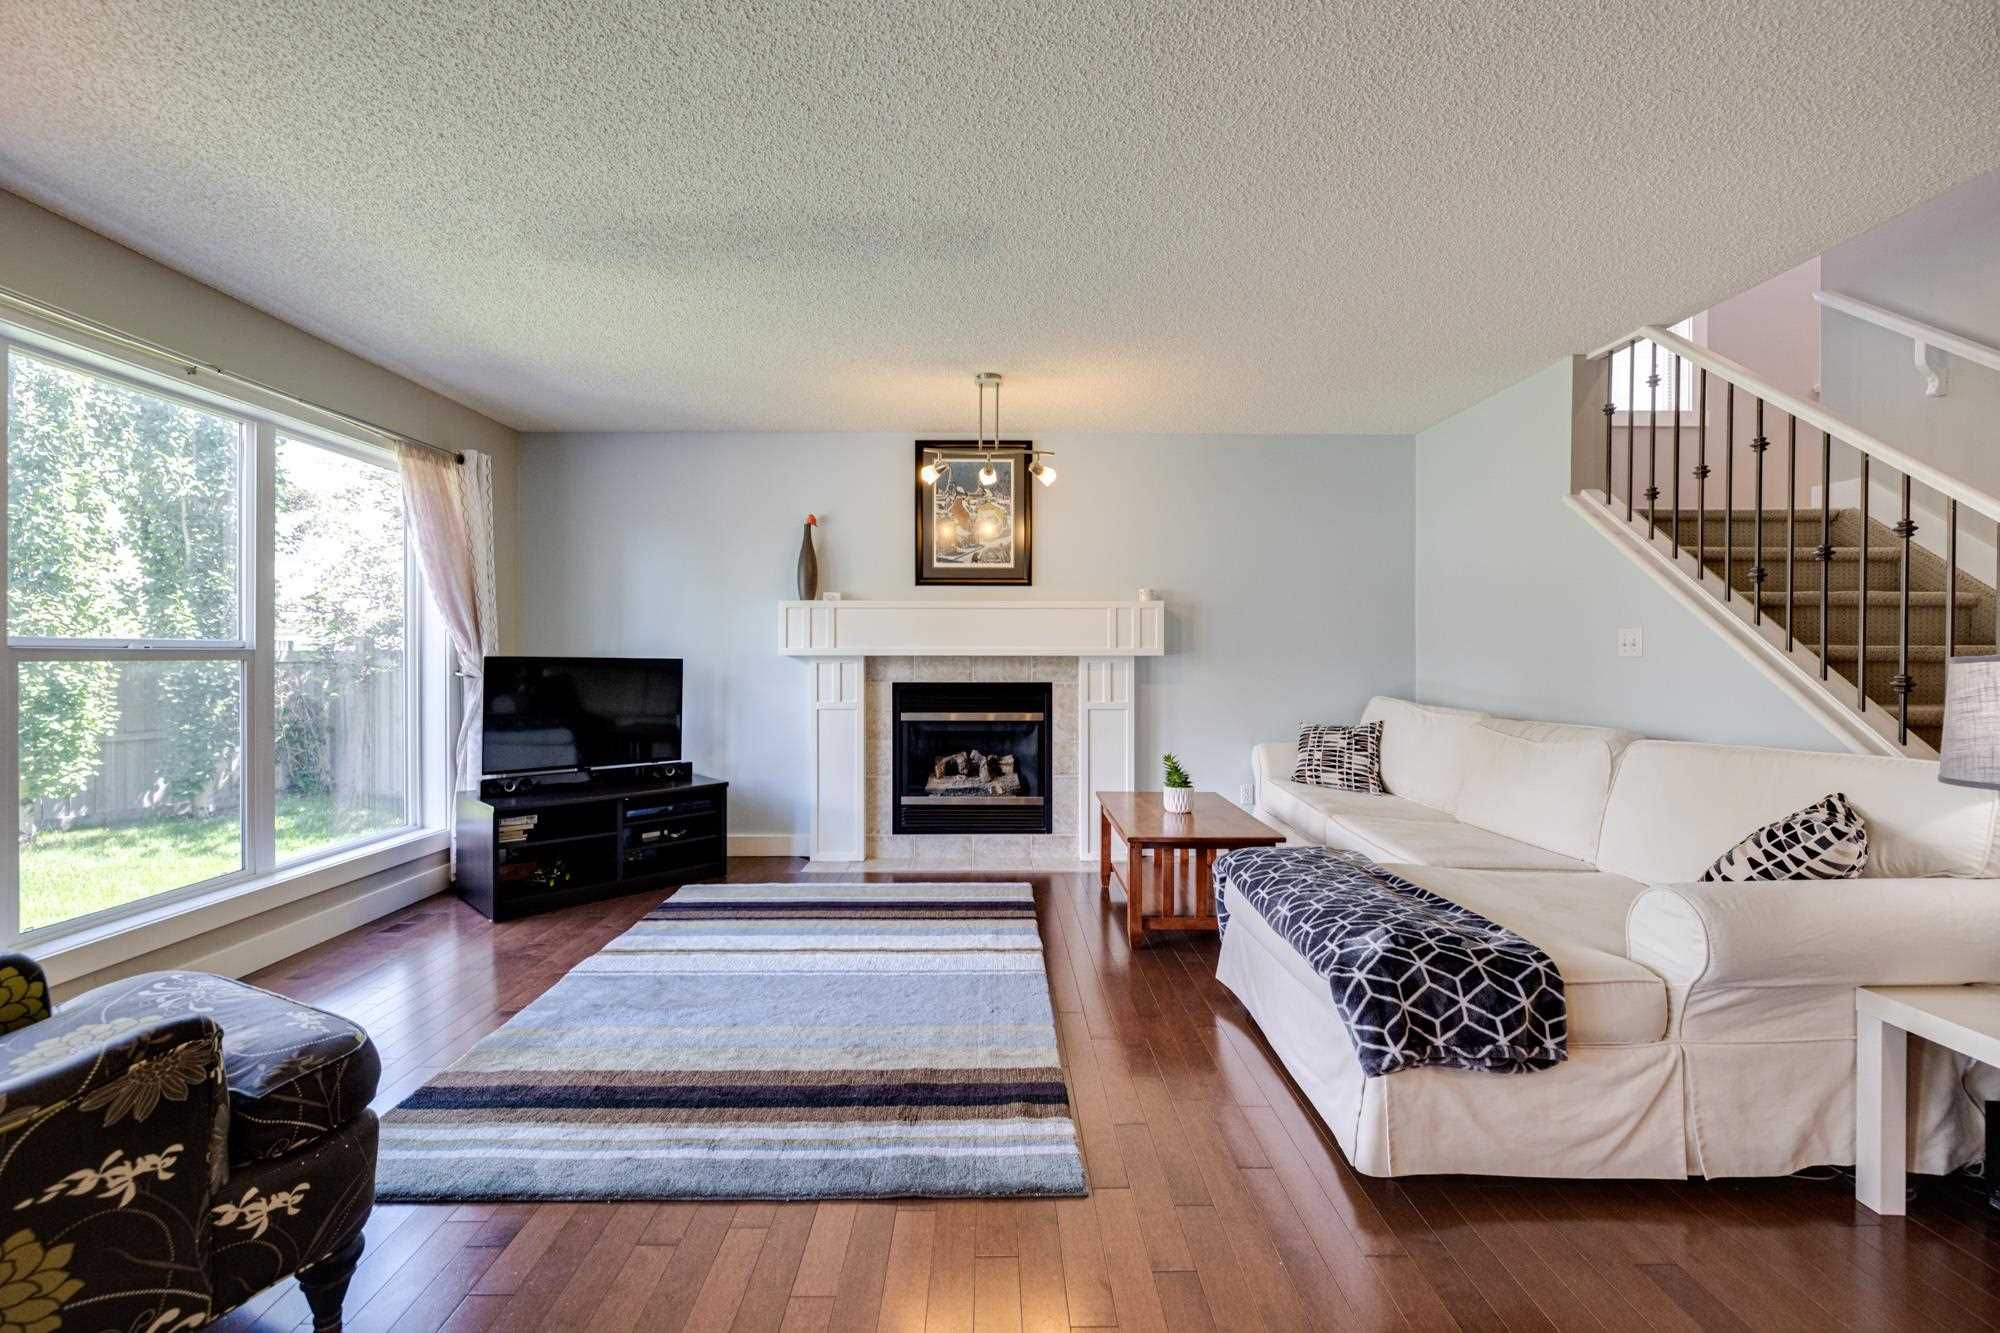 Main Photo: 2630 MARION Place in Edmonton: Zone 55 House for sale : MLS®# E4248409